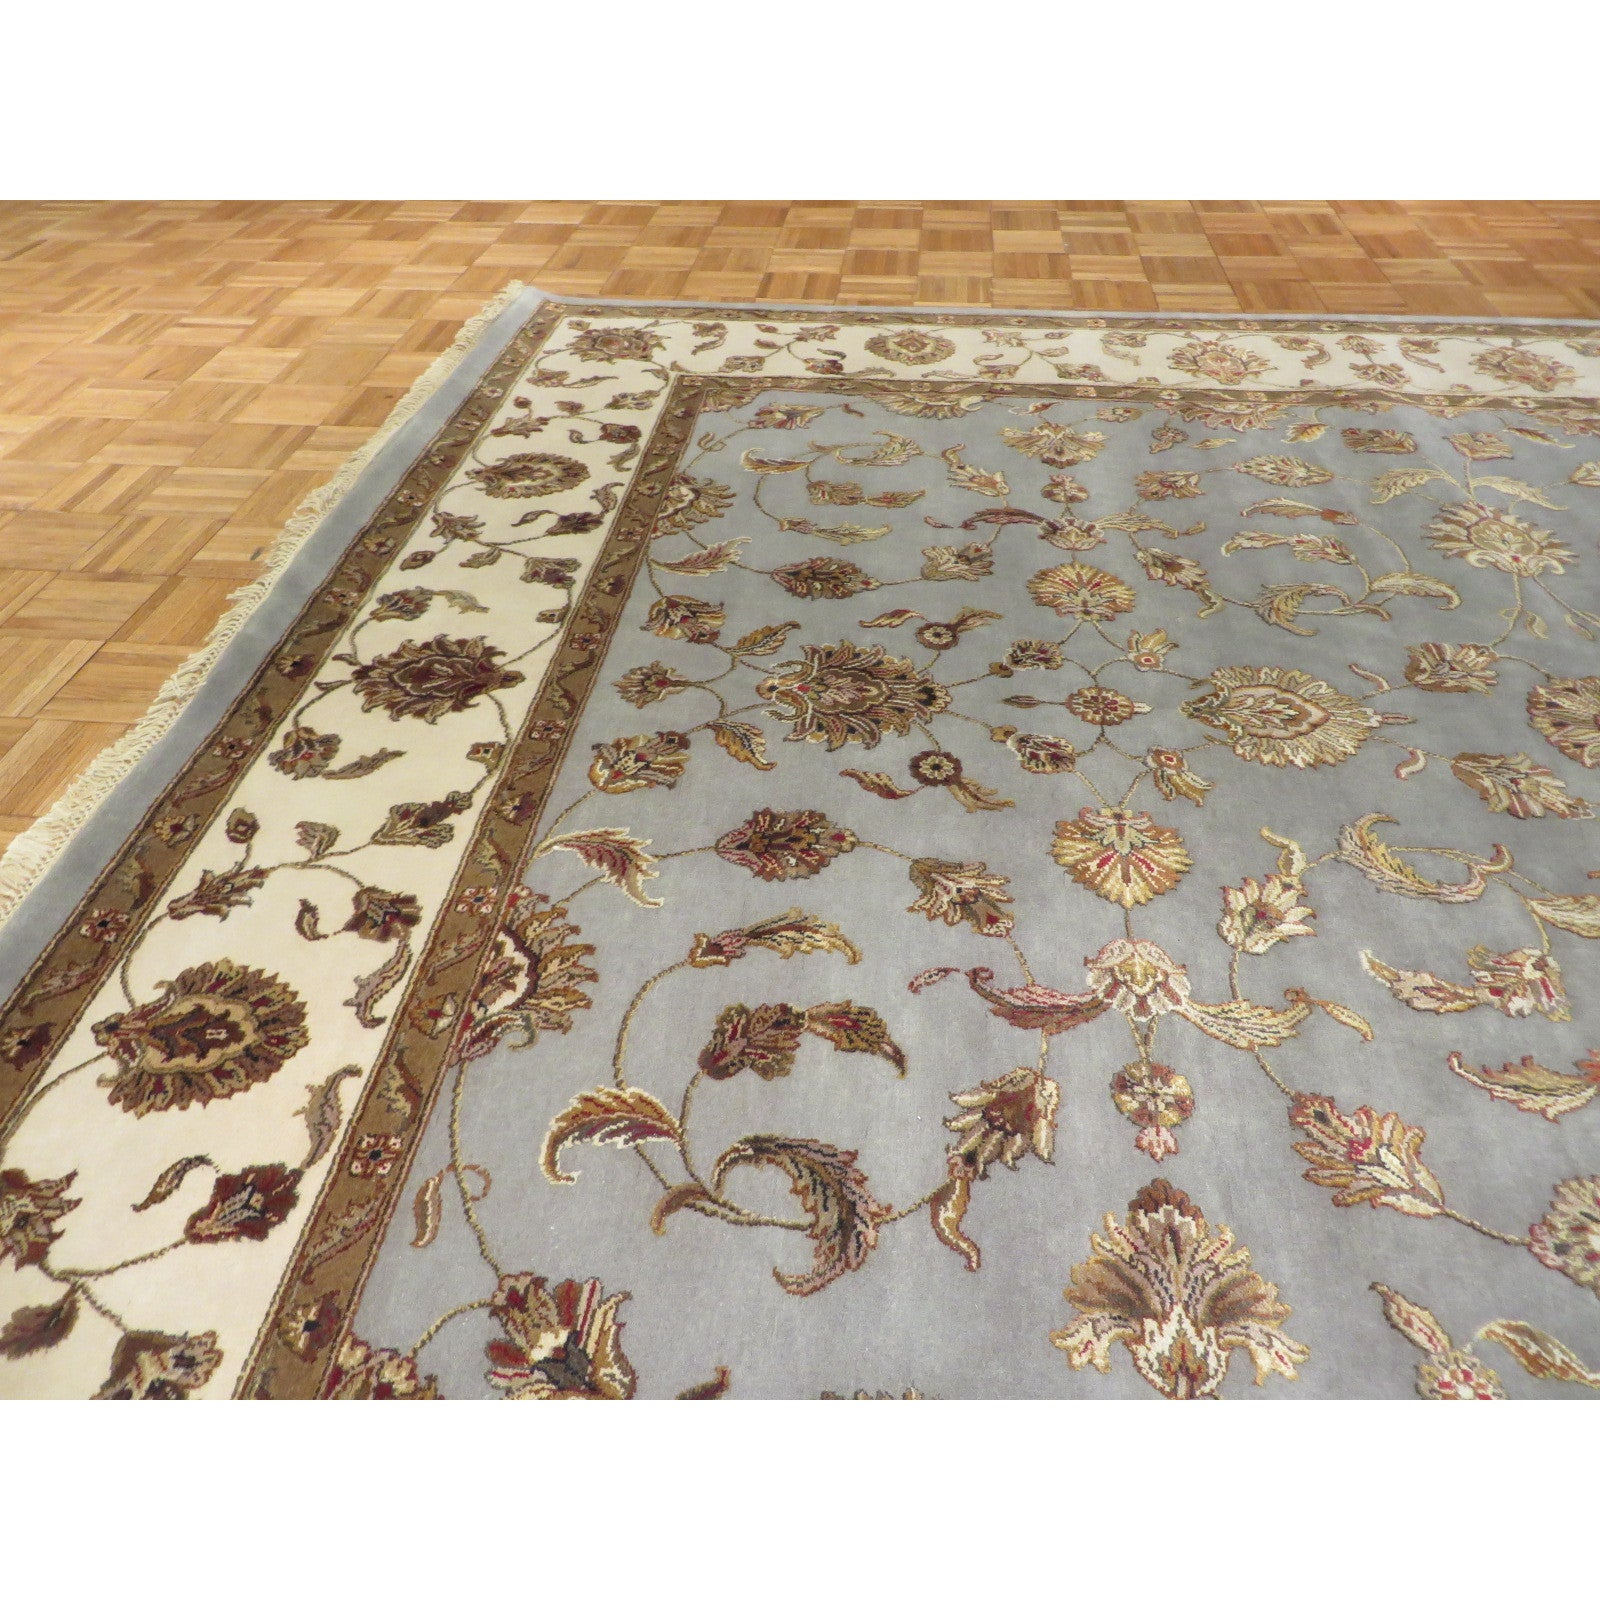 Tabriz Oriental Blue Tan Red Sage Gold Brown Wool And Silk Hand Knotted Rug 7 11 X 9 11 On Sale Overstock 13005698